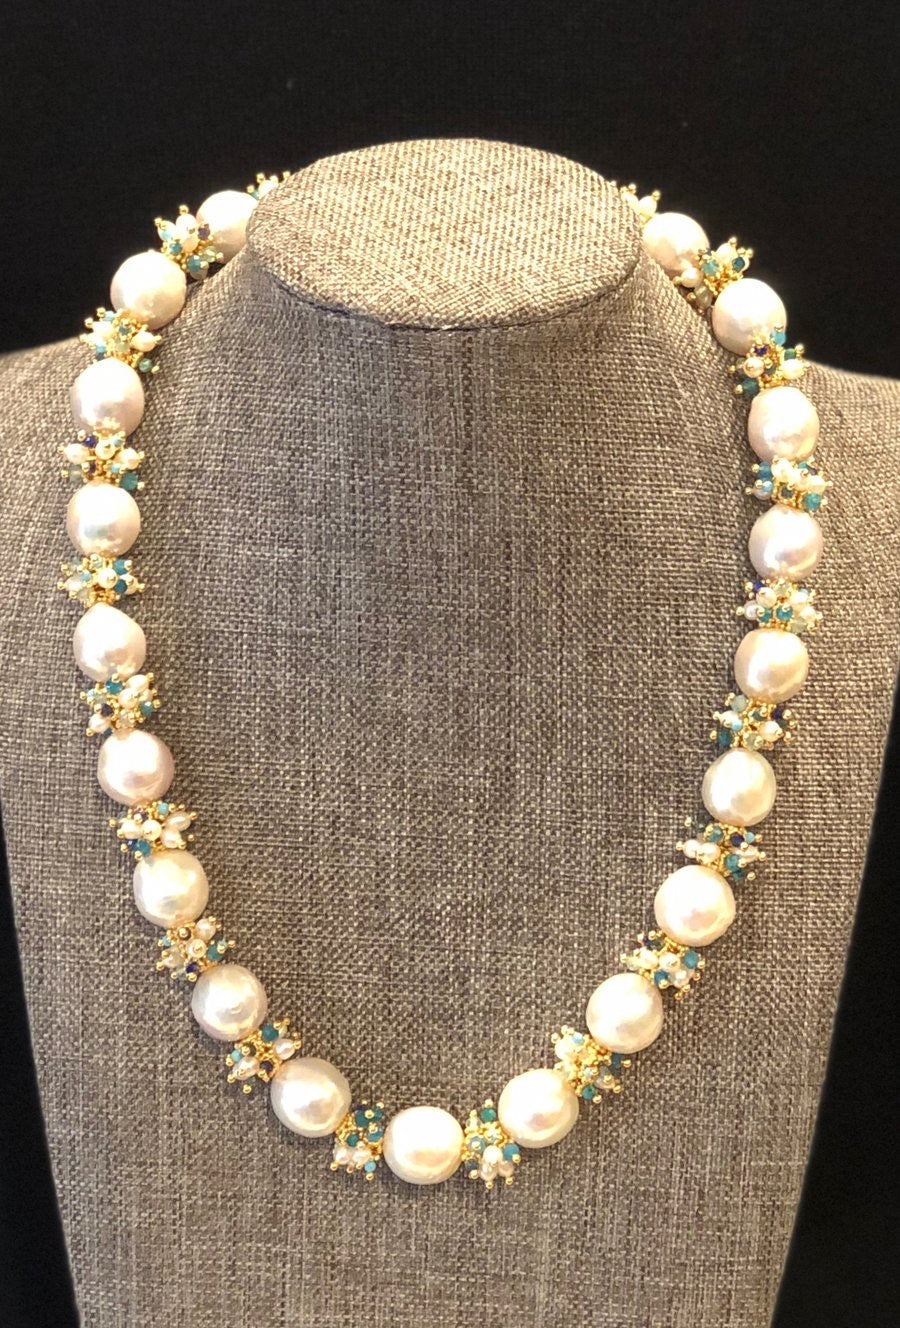 Baroque Pearl Necklace with Blue Clusters